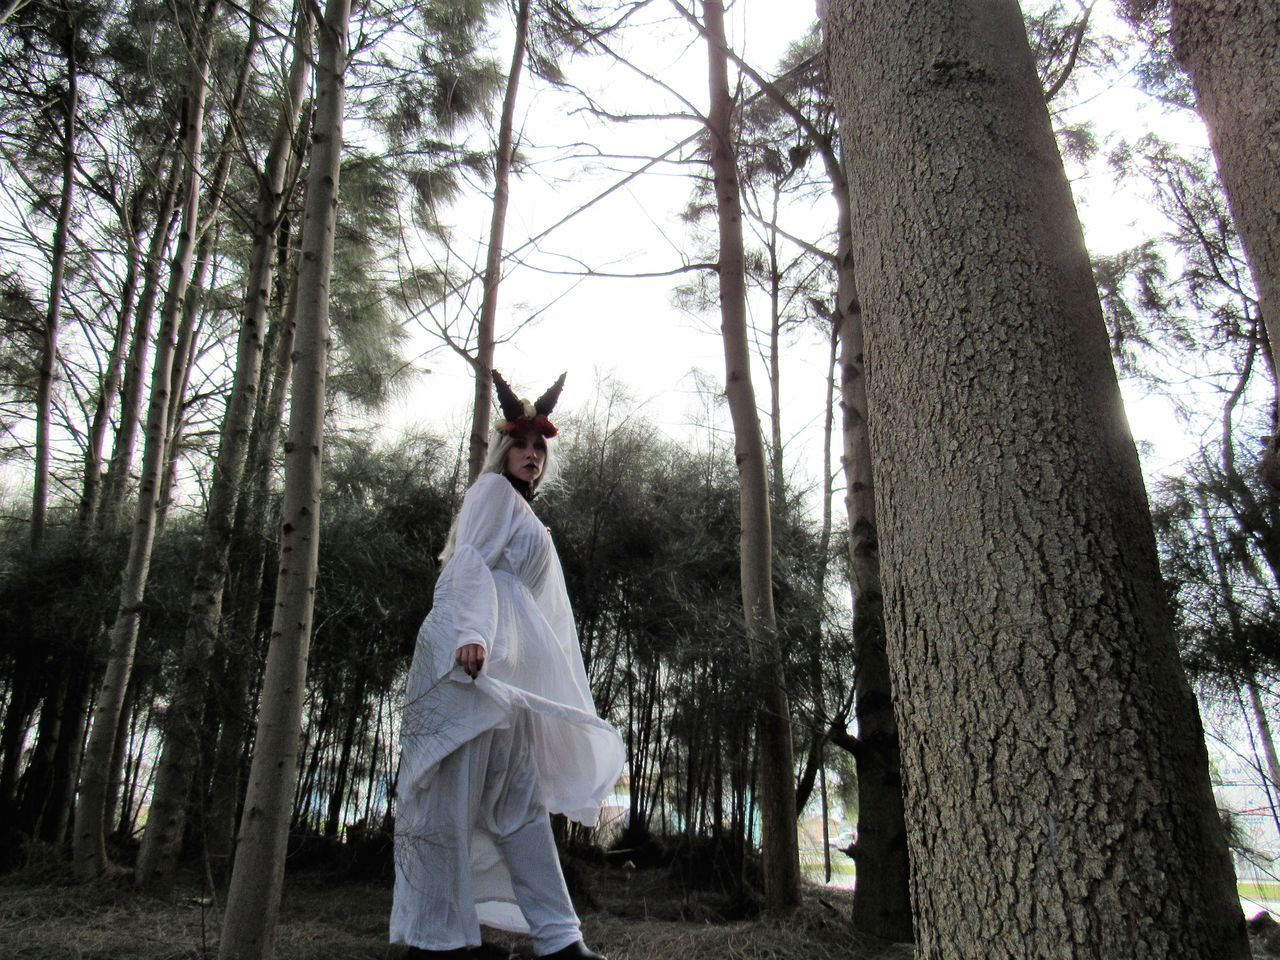 Magical Adult Day DEEP FOREST Forest Horned Female Nature One Person Outdoors People Tree Tree Trunk White Dress White Gothic Young Adult Carnival Crowds And Details